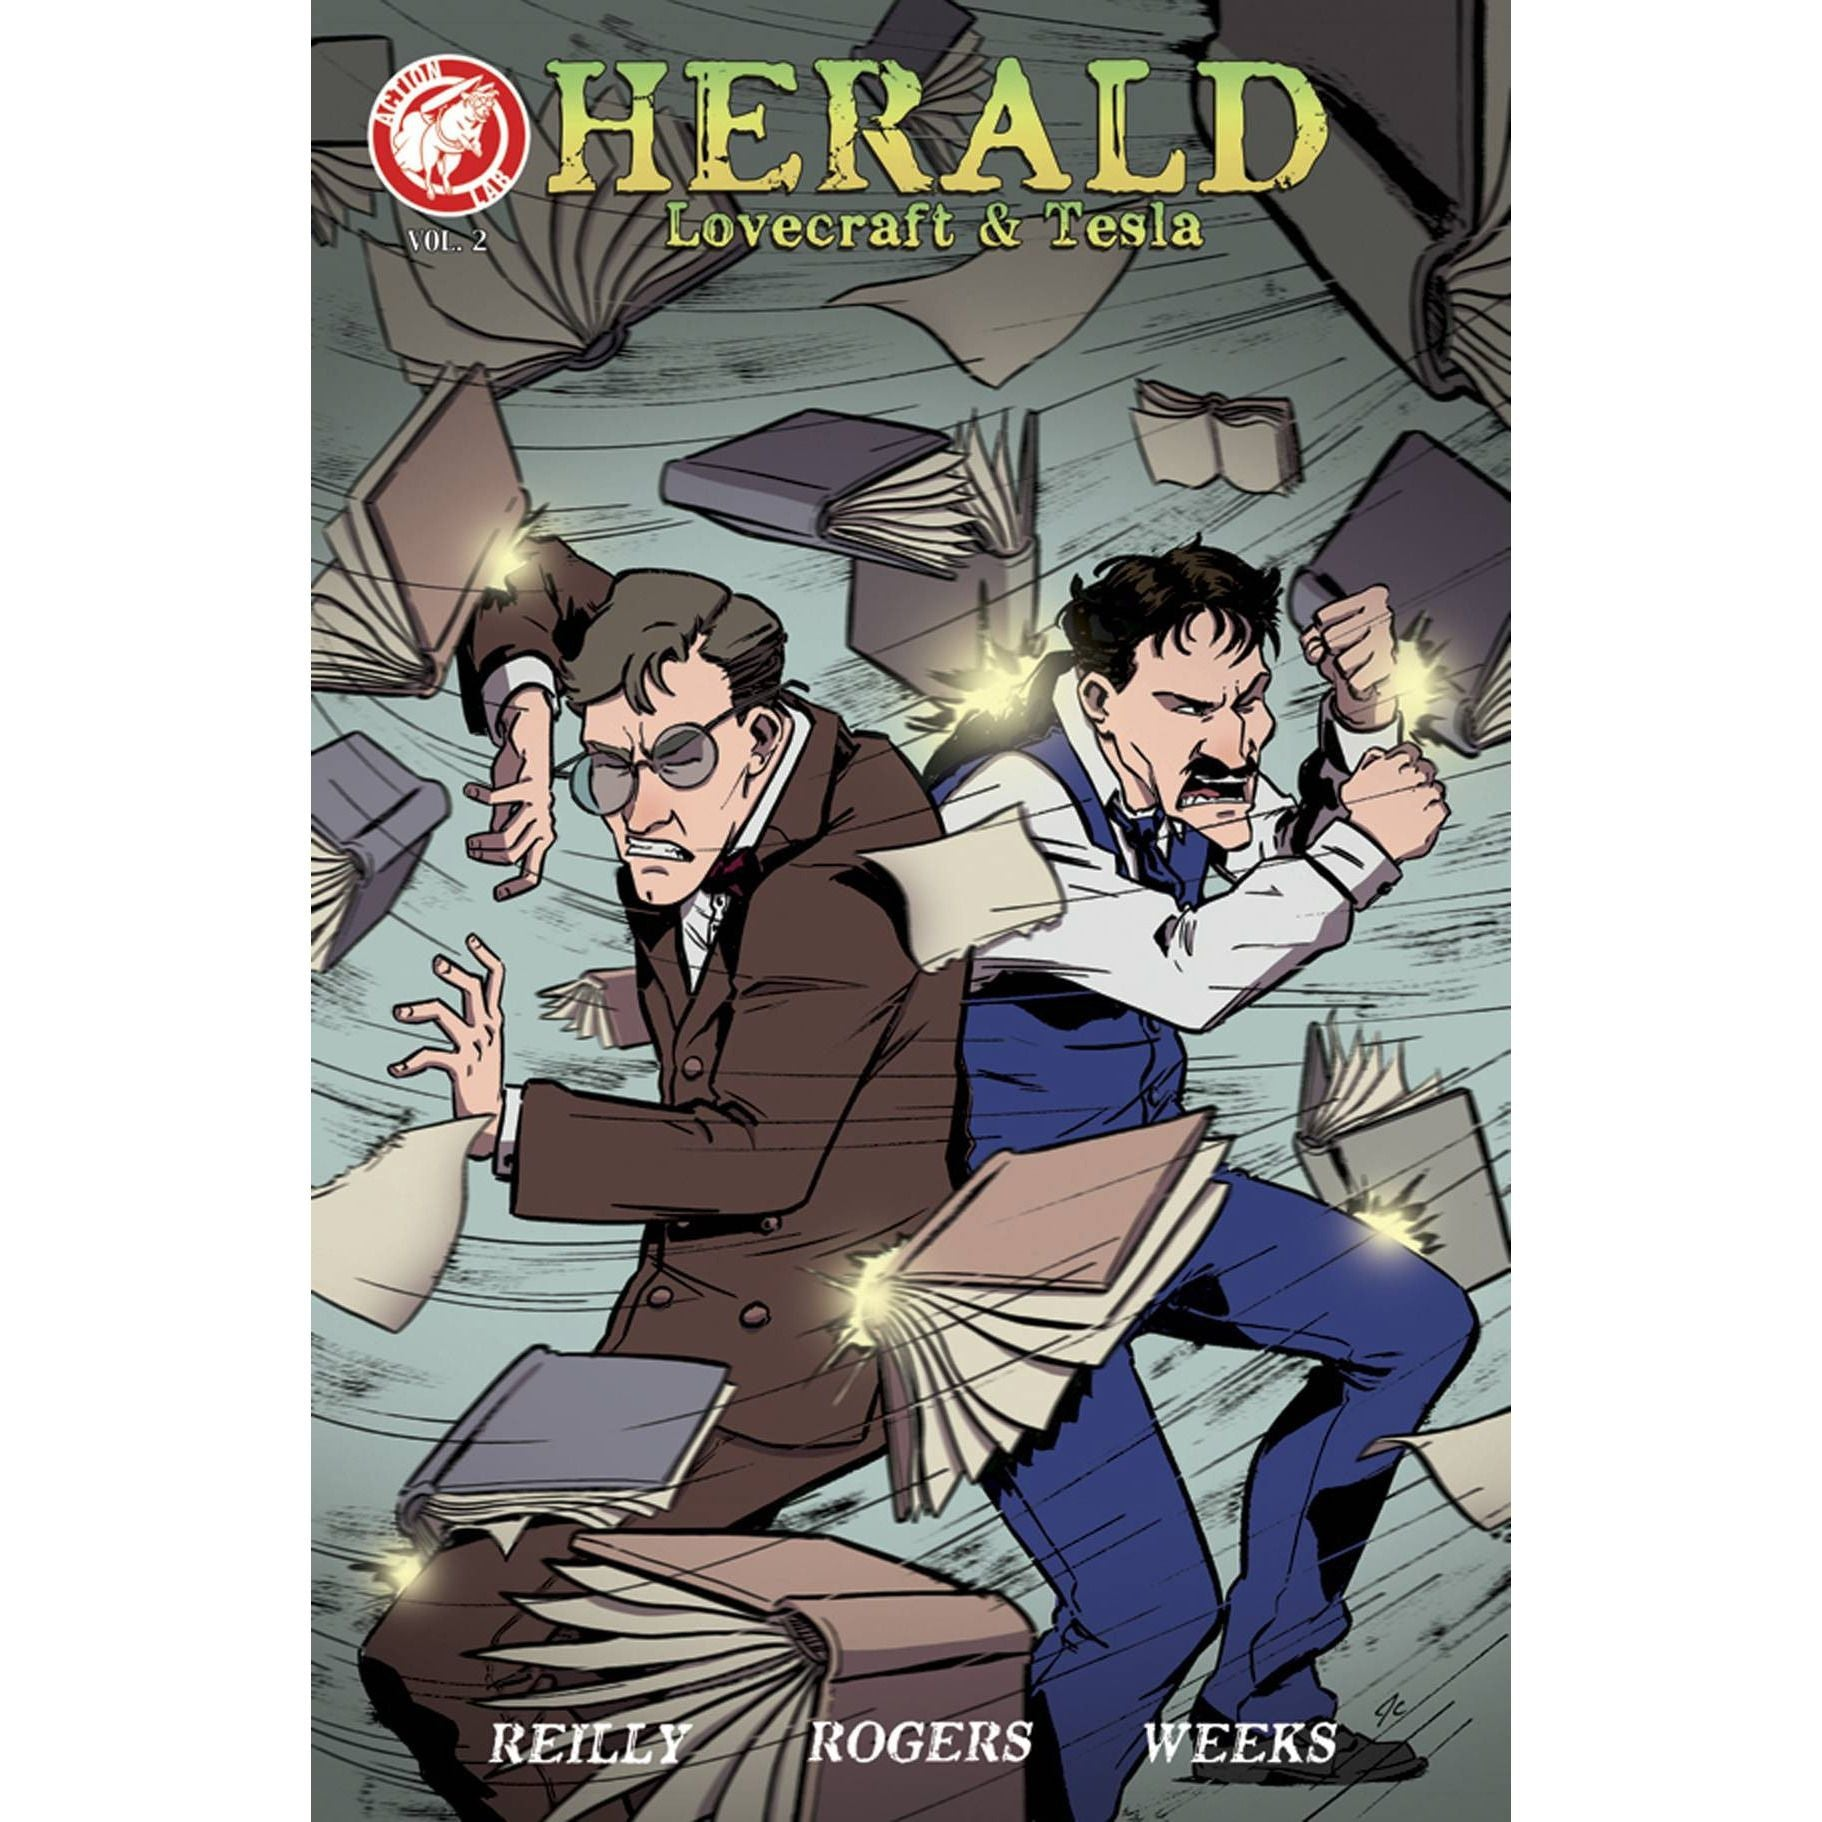 Herald Lovecraft & Tesla TP Fingers To The Bone Uncanny!